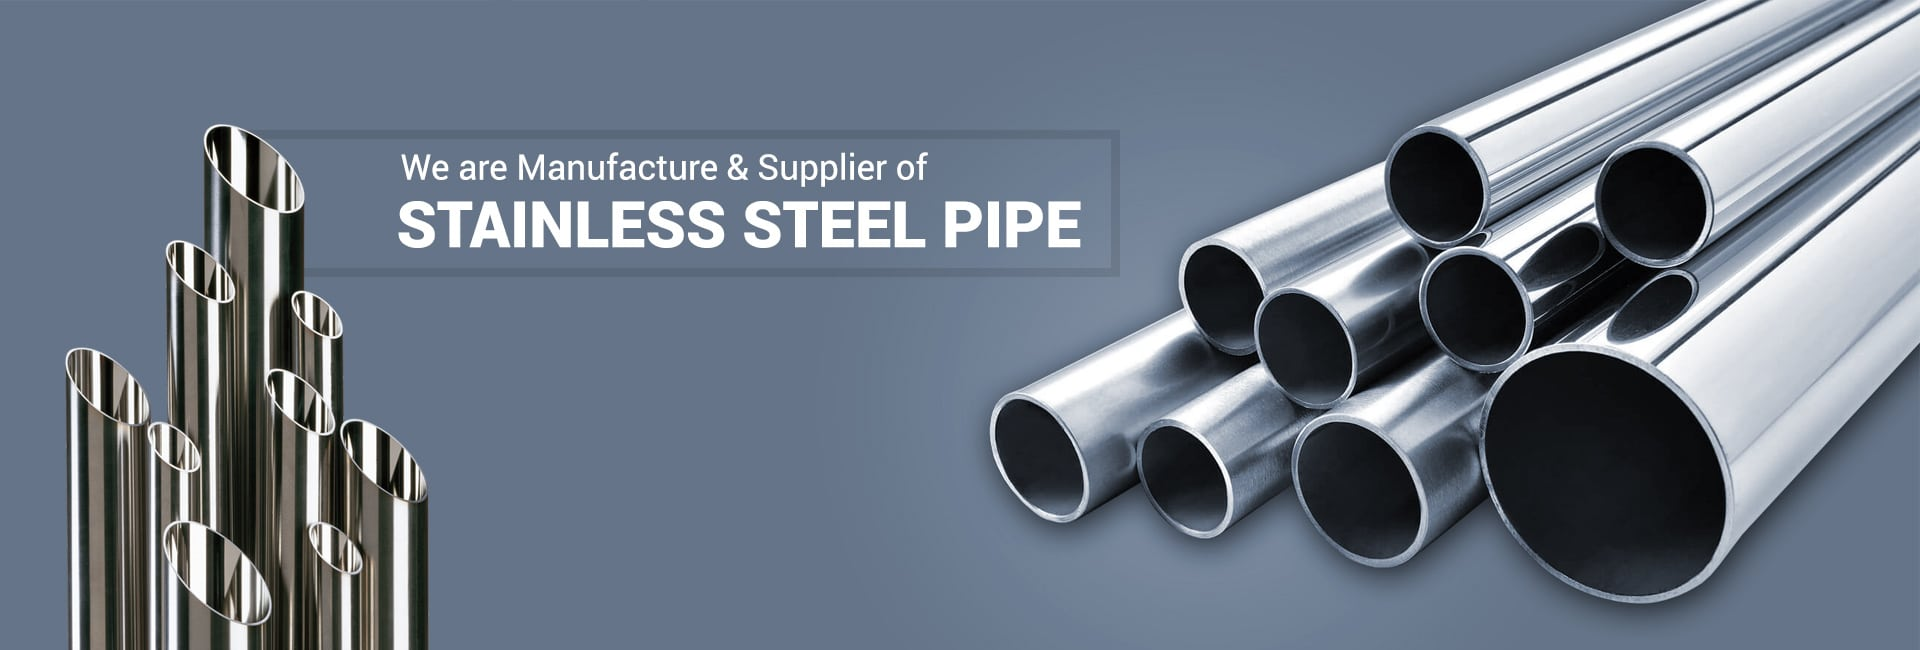 Stainless Steel Pipe & Tubes Manufacturers, dealers in Ahmedabad, gujarat, india